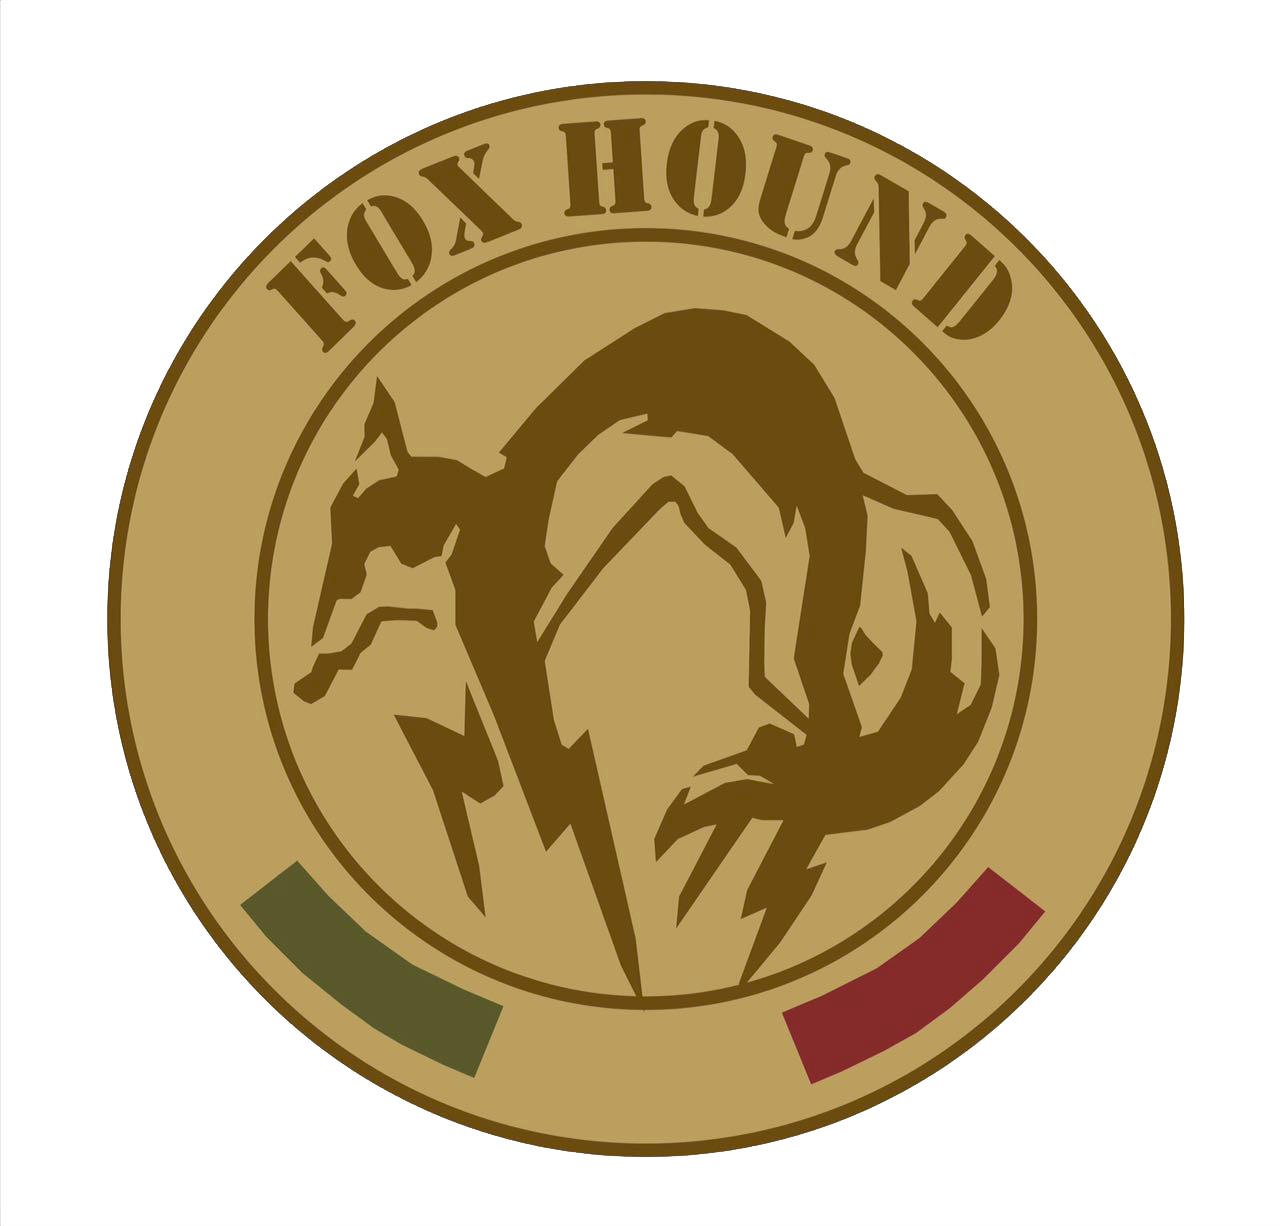 Fox Hound Softair | Desenzano del Garda